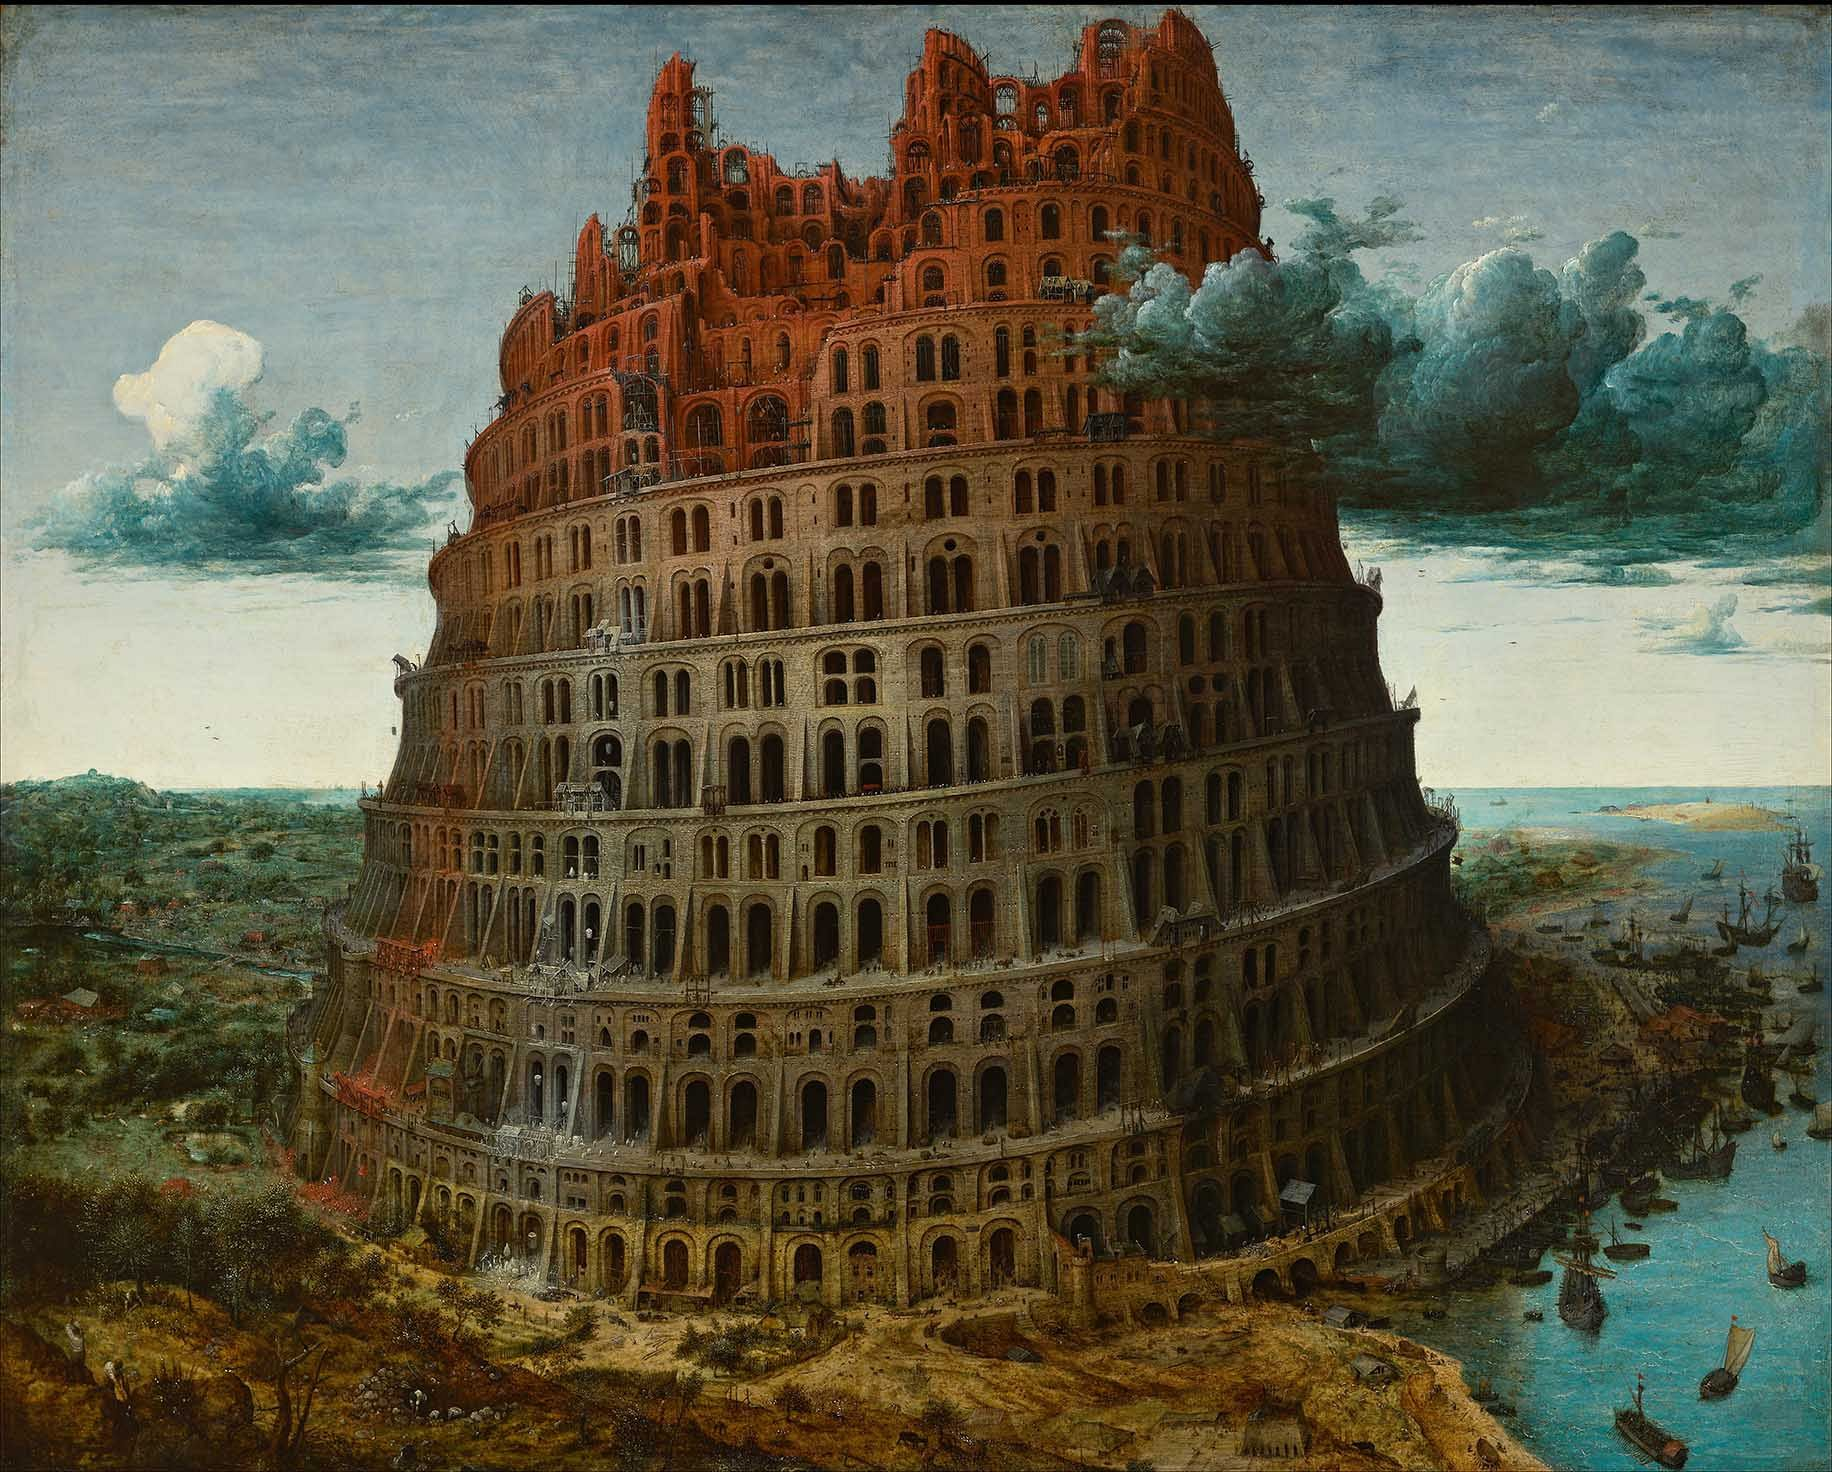 _The little Tower of Babel_, Peter Breughel the Elder, around 1563.